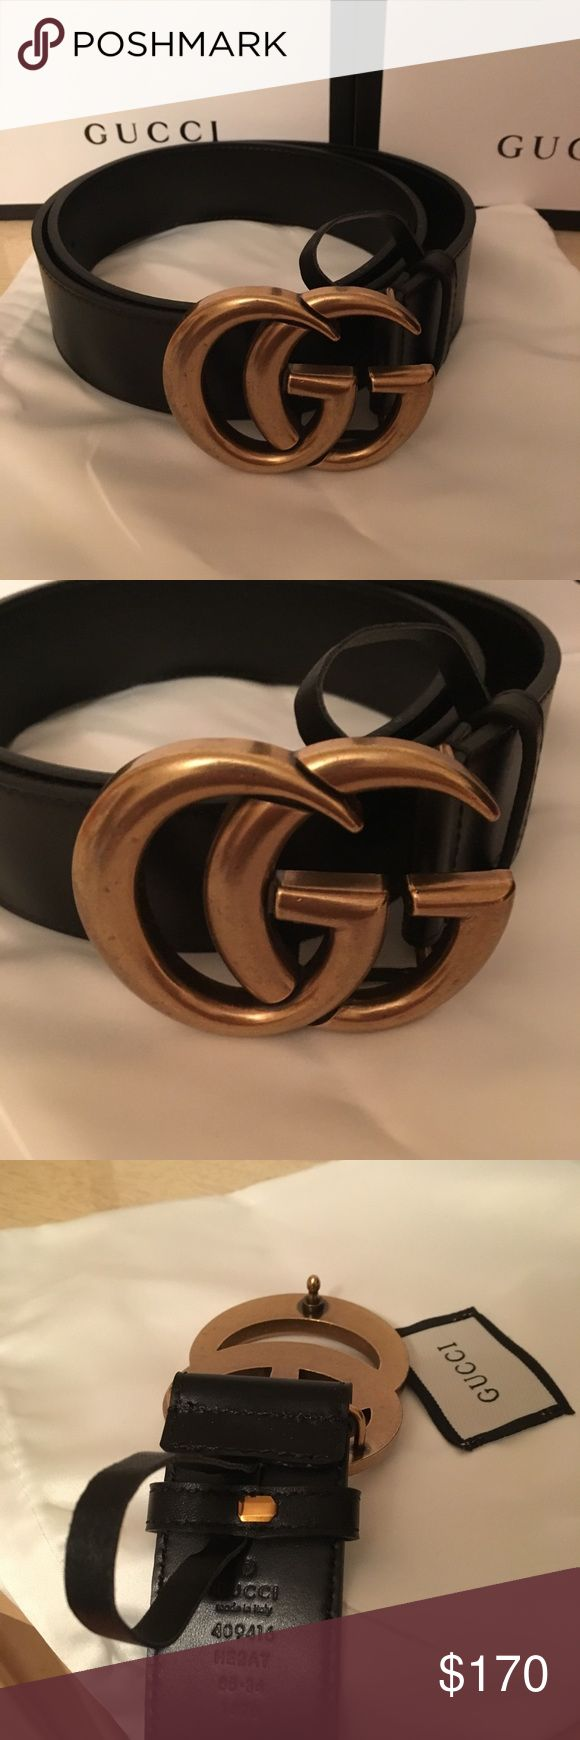 Gucci belt women's Ladies this belt is brand new and authentic . Will ship out with box and garment bag . Receipt is included !! Fits size 24-30 Gucci Accessories Belts